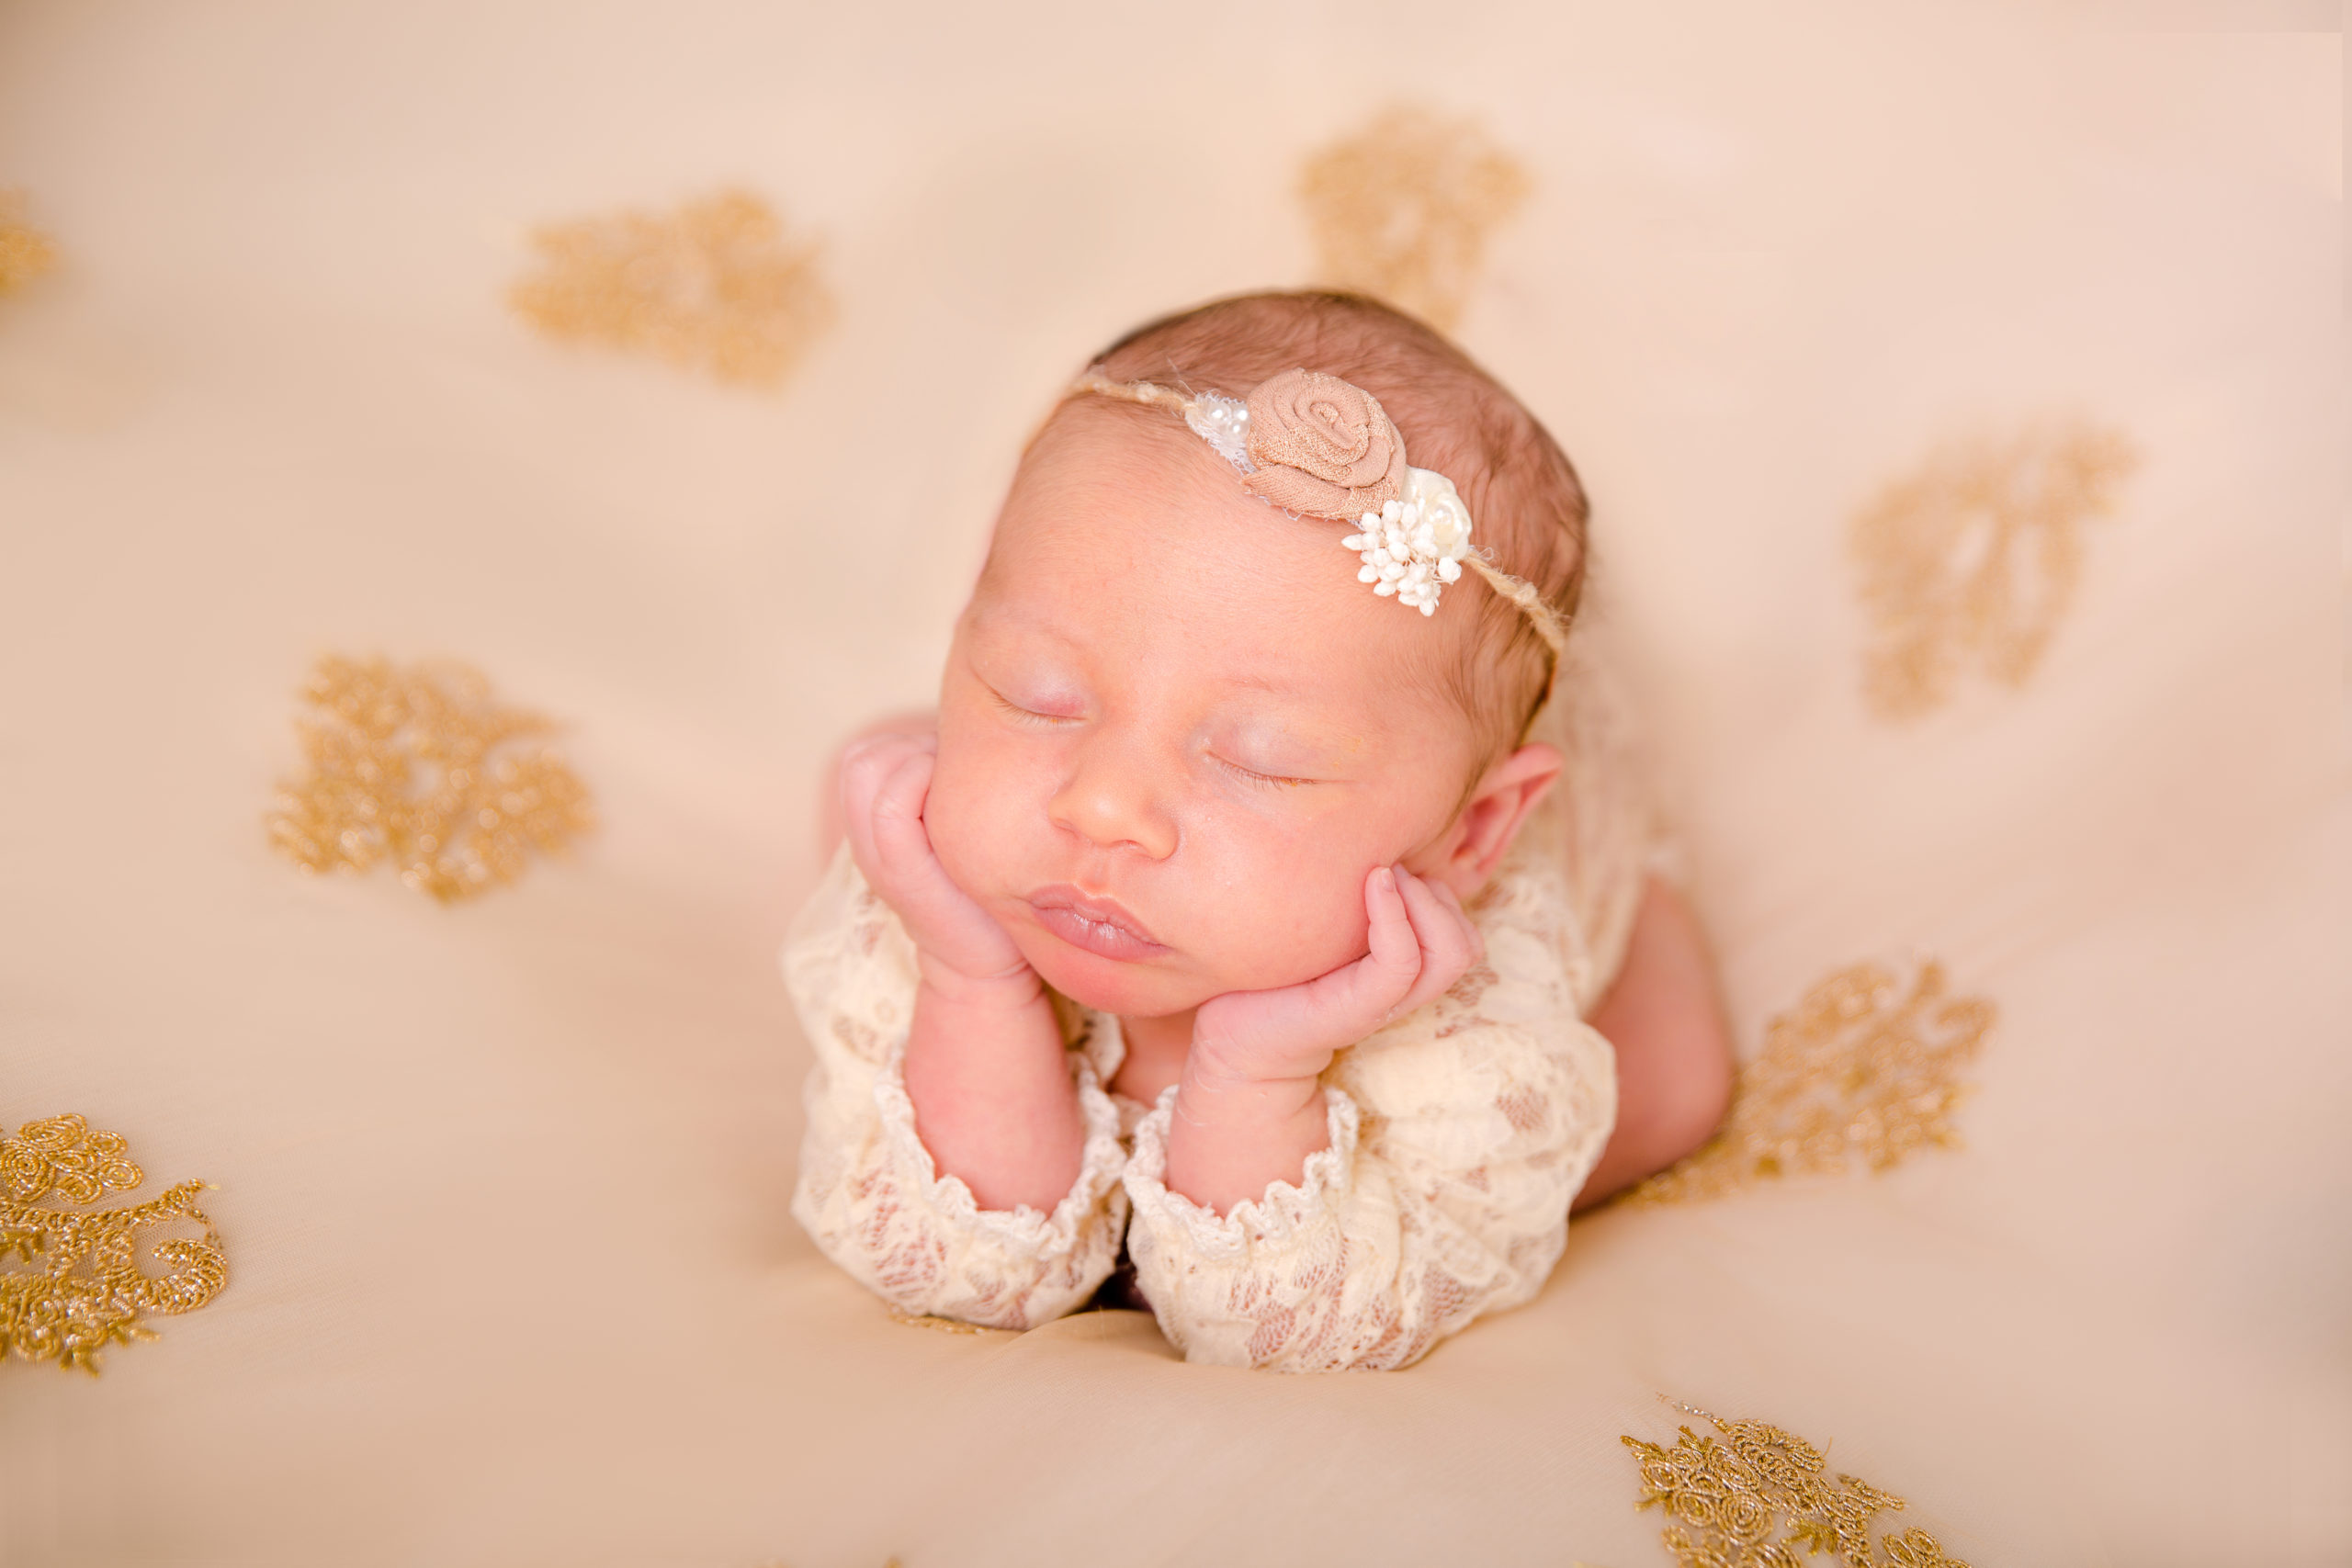 Newborn baby and Family Photographer in South West London Wimbledon Baby girl froggy pose newborn art photography froggy pose baby girl